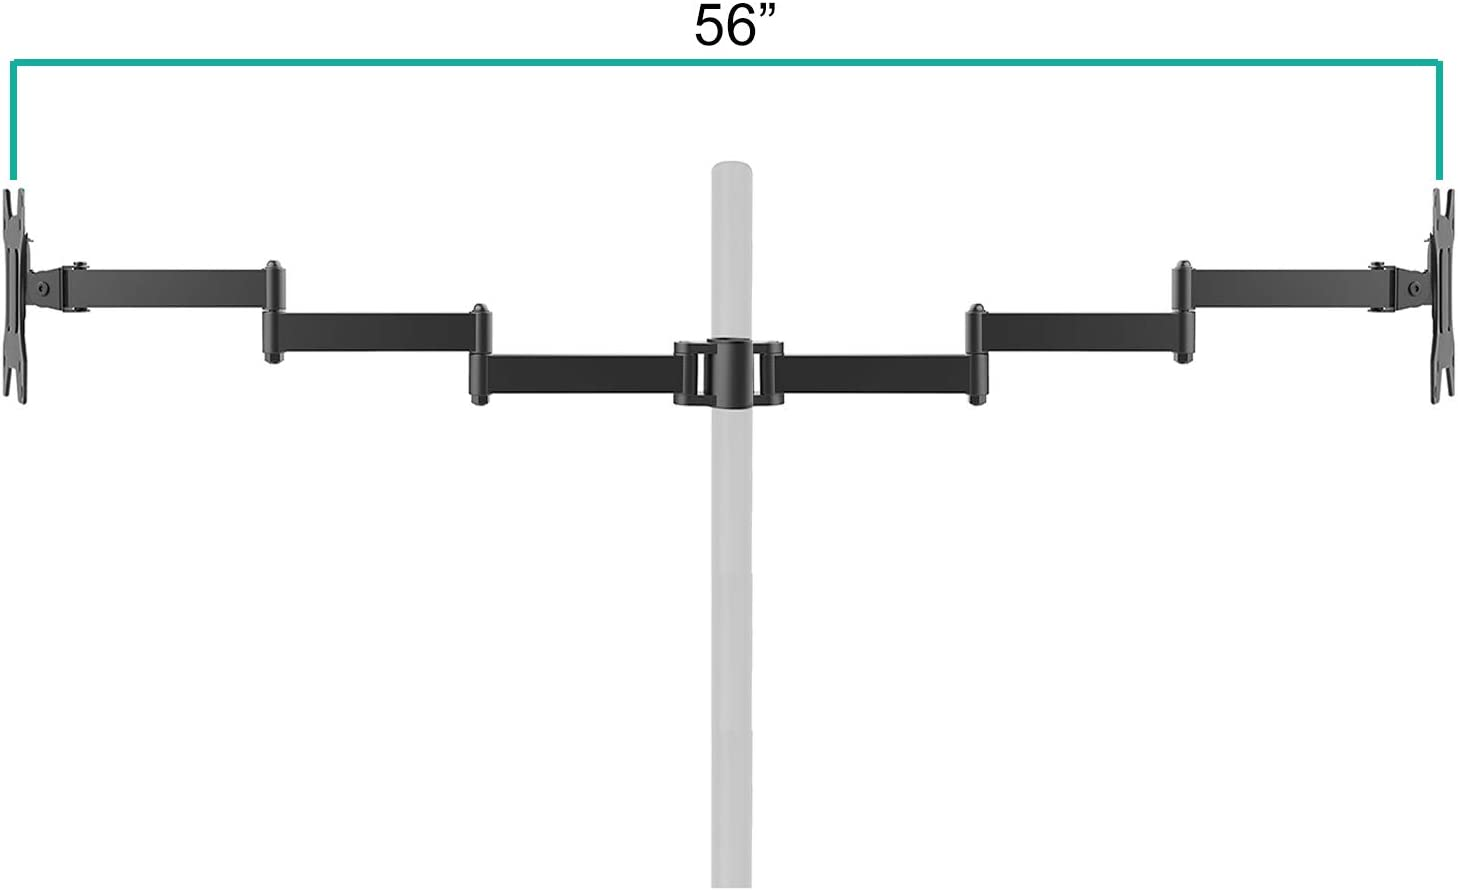 WALI Universal Single Fully Adjustable 3 Tier Arm Accessory for WALI Monitor Mounting System Black 001ARMXL